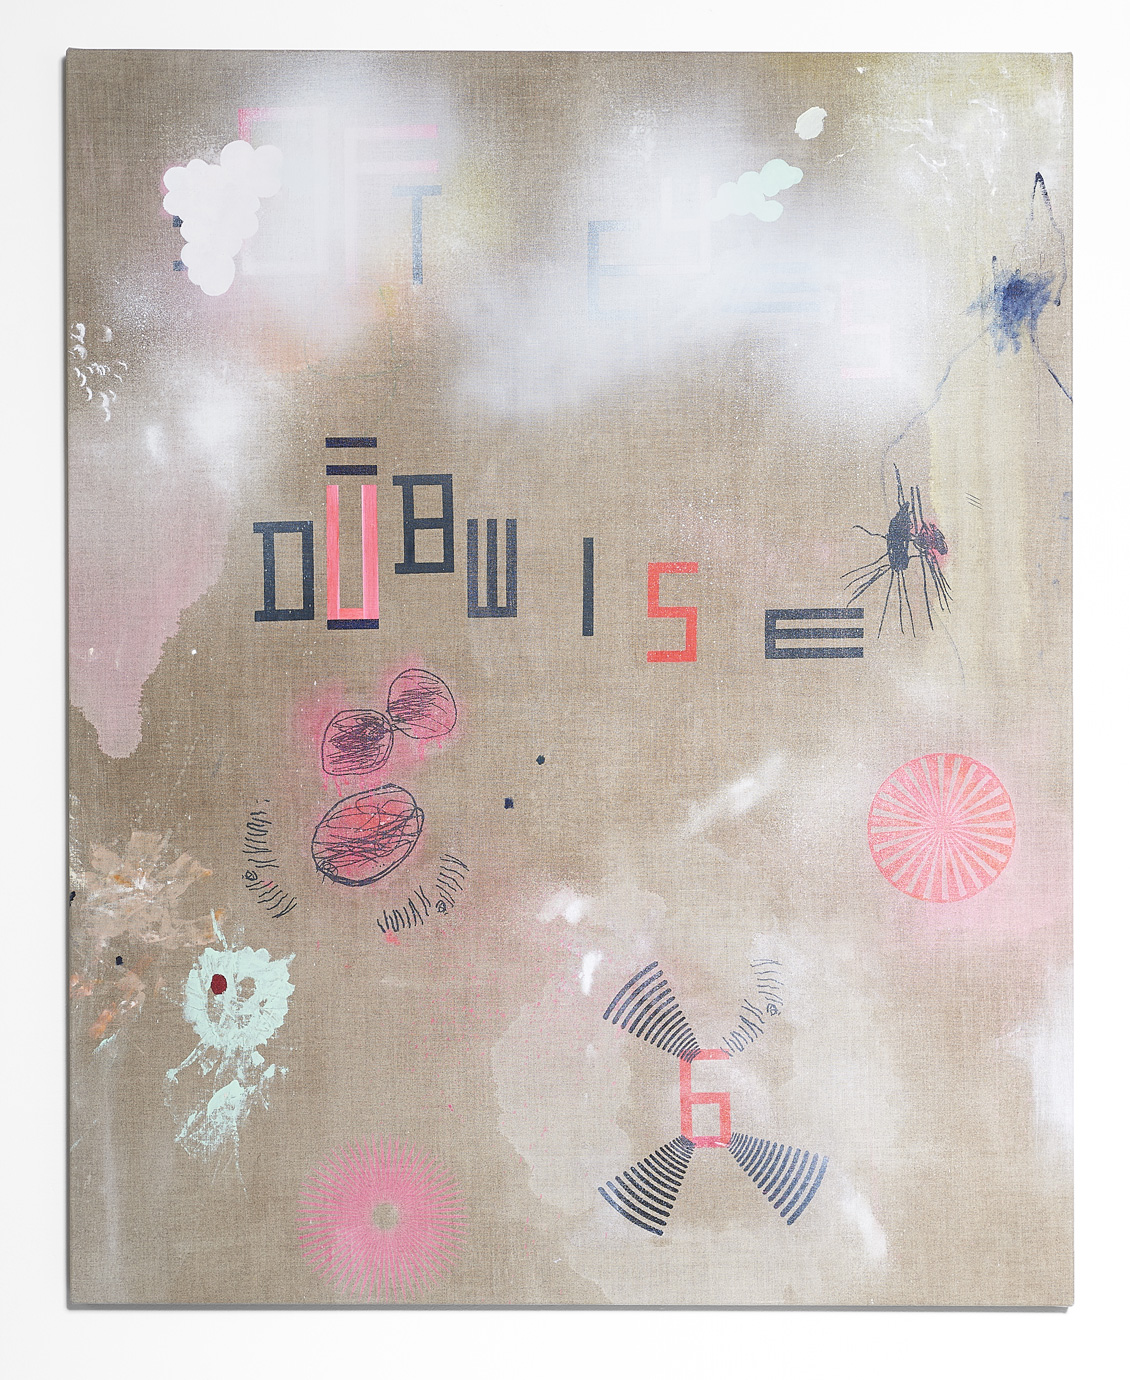 SARAH crowEST  DUB WISE  2018 (#6 loomstate) acrylic on linen 127 × 102 cm